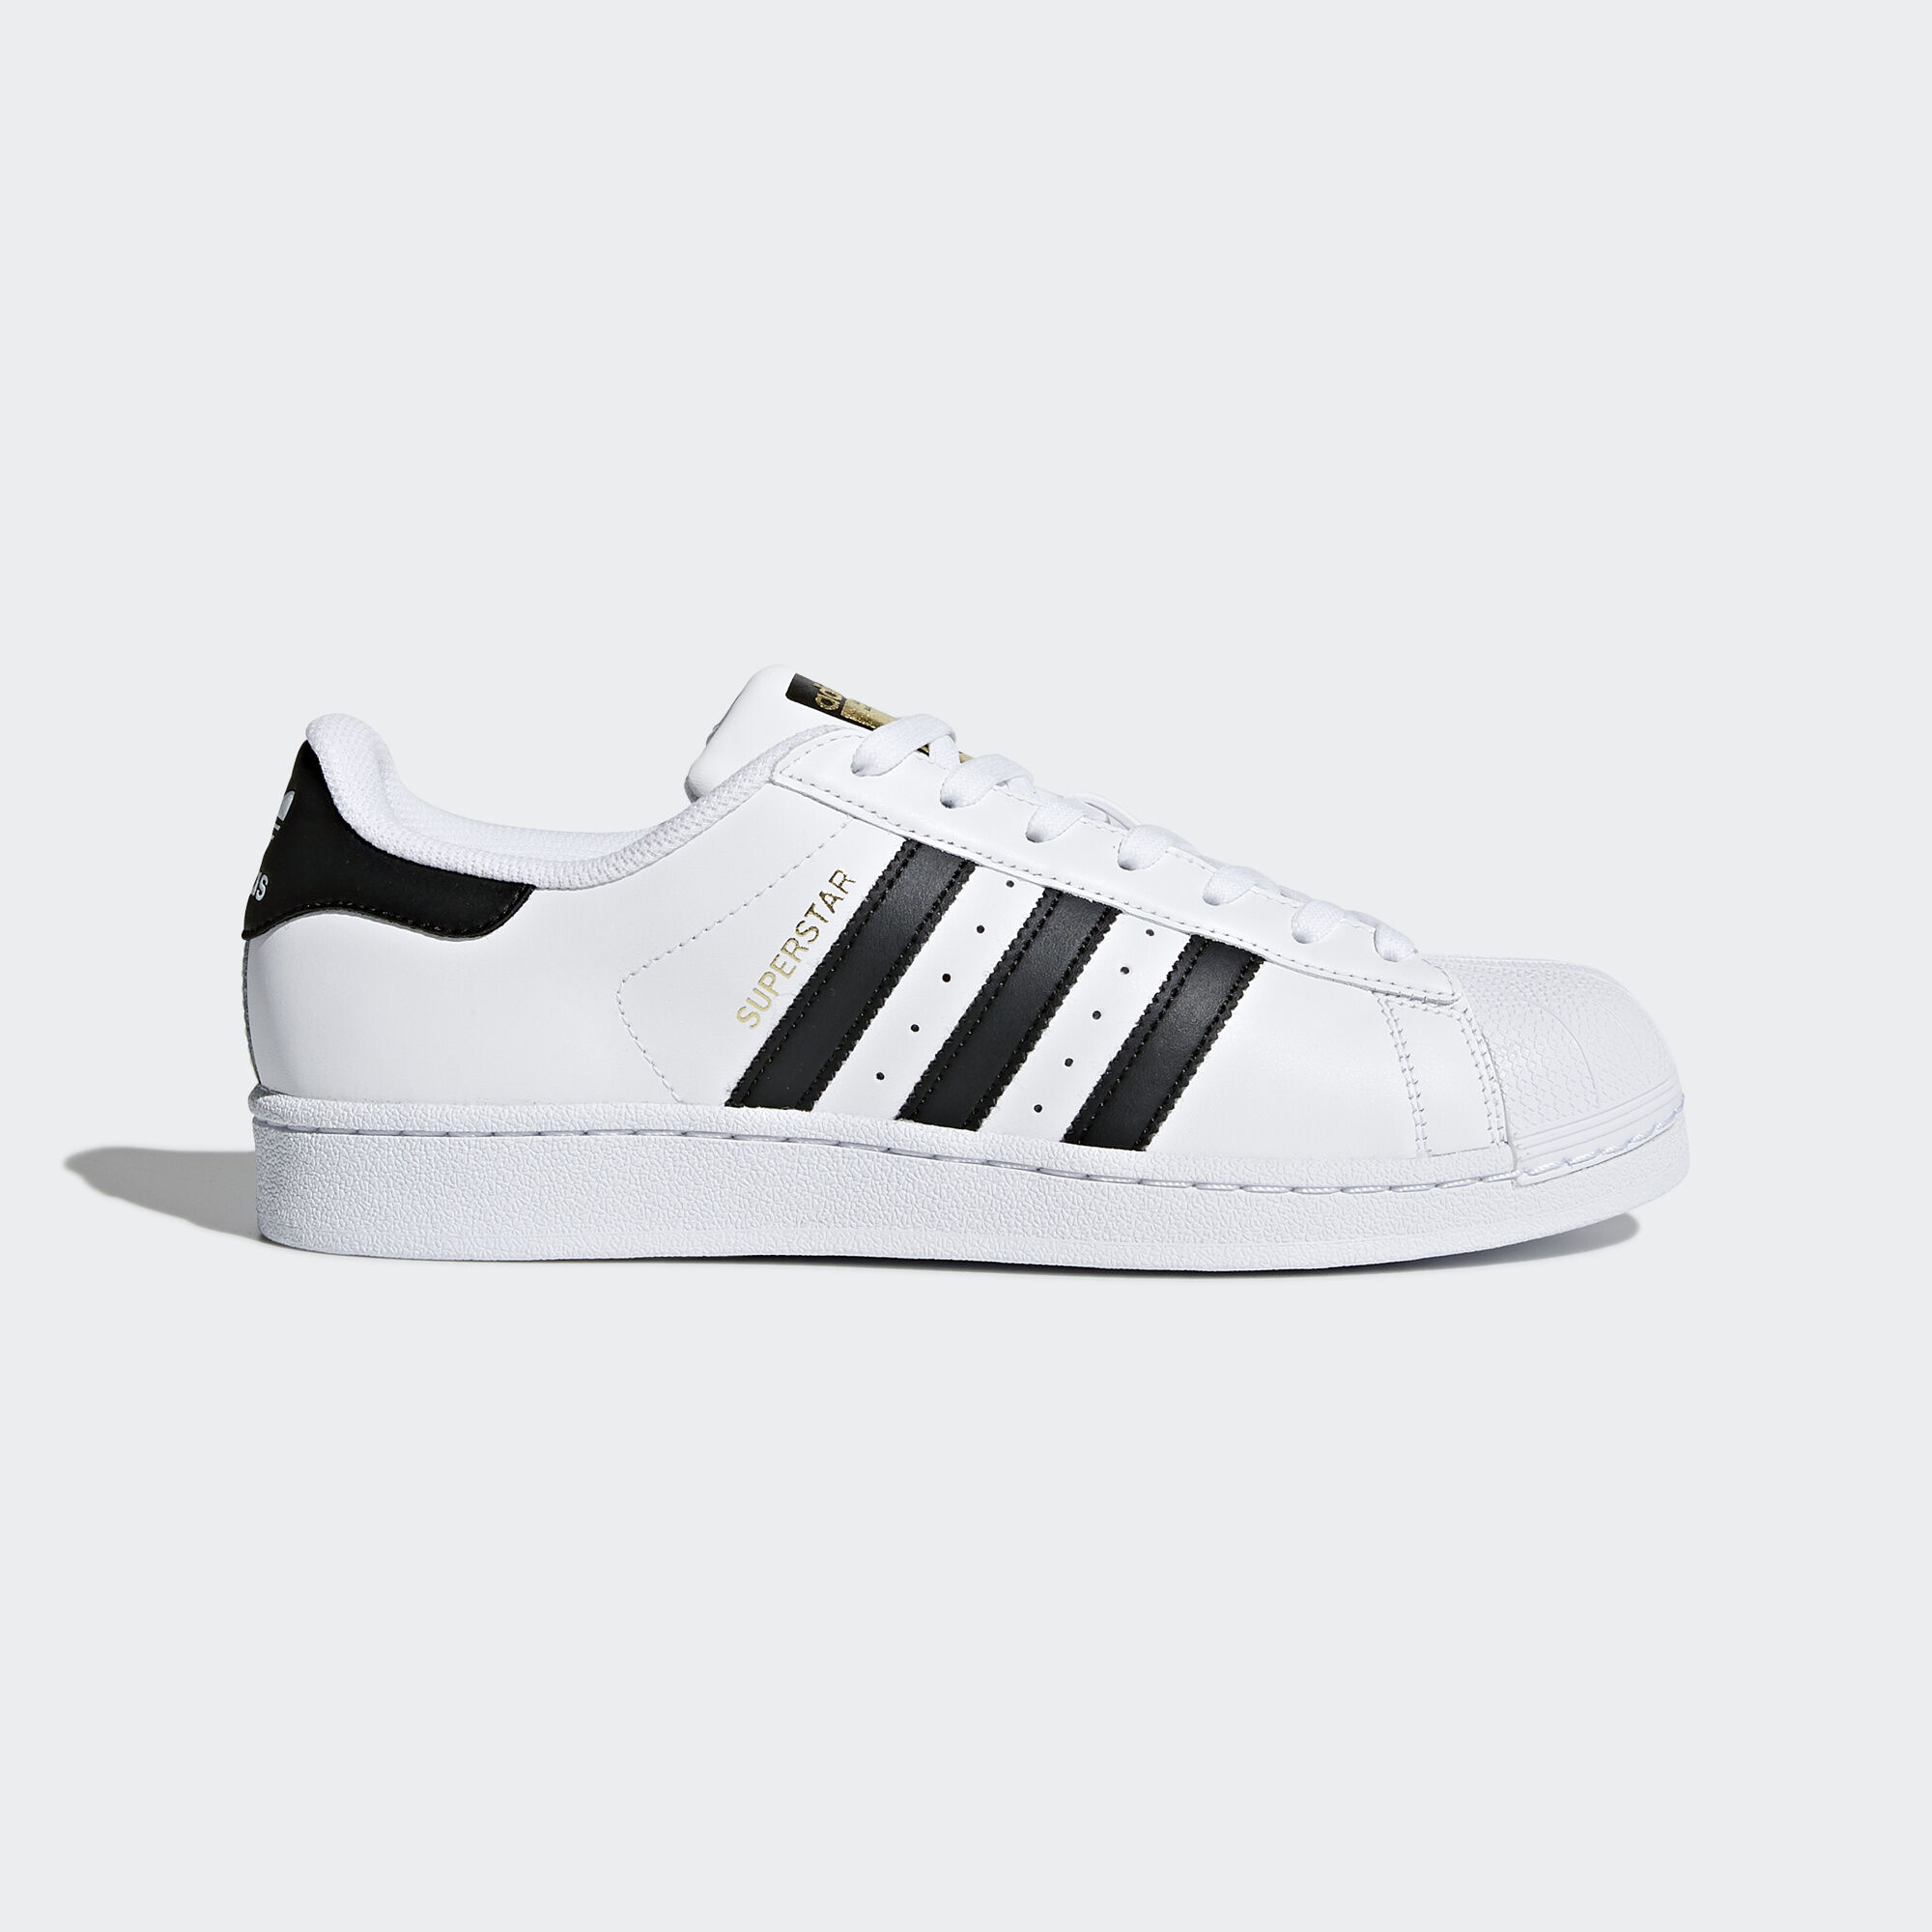 Adidas Superstar 2 White Black